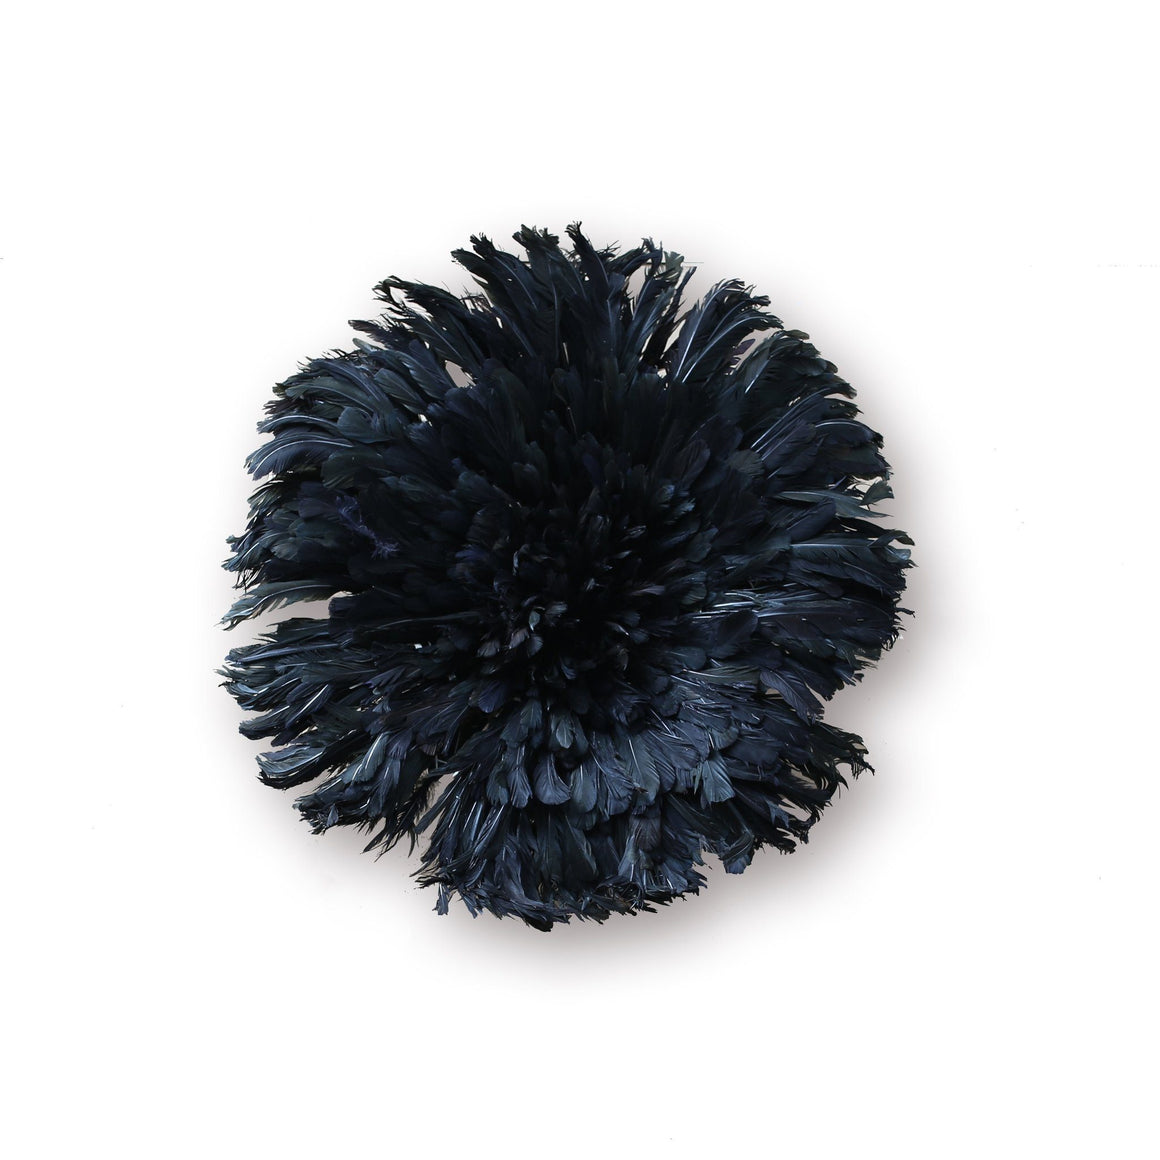 Onyx Juju Hat - Canary Lane - Curated Textiles